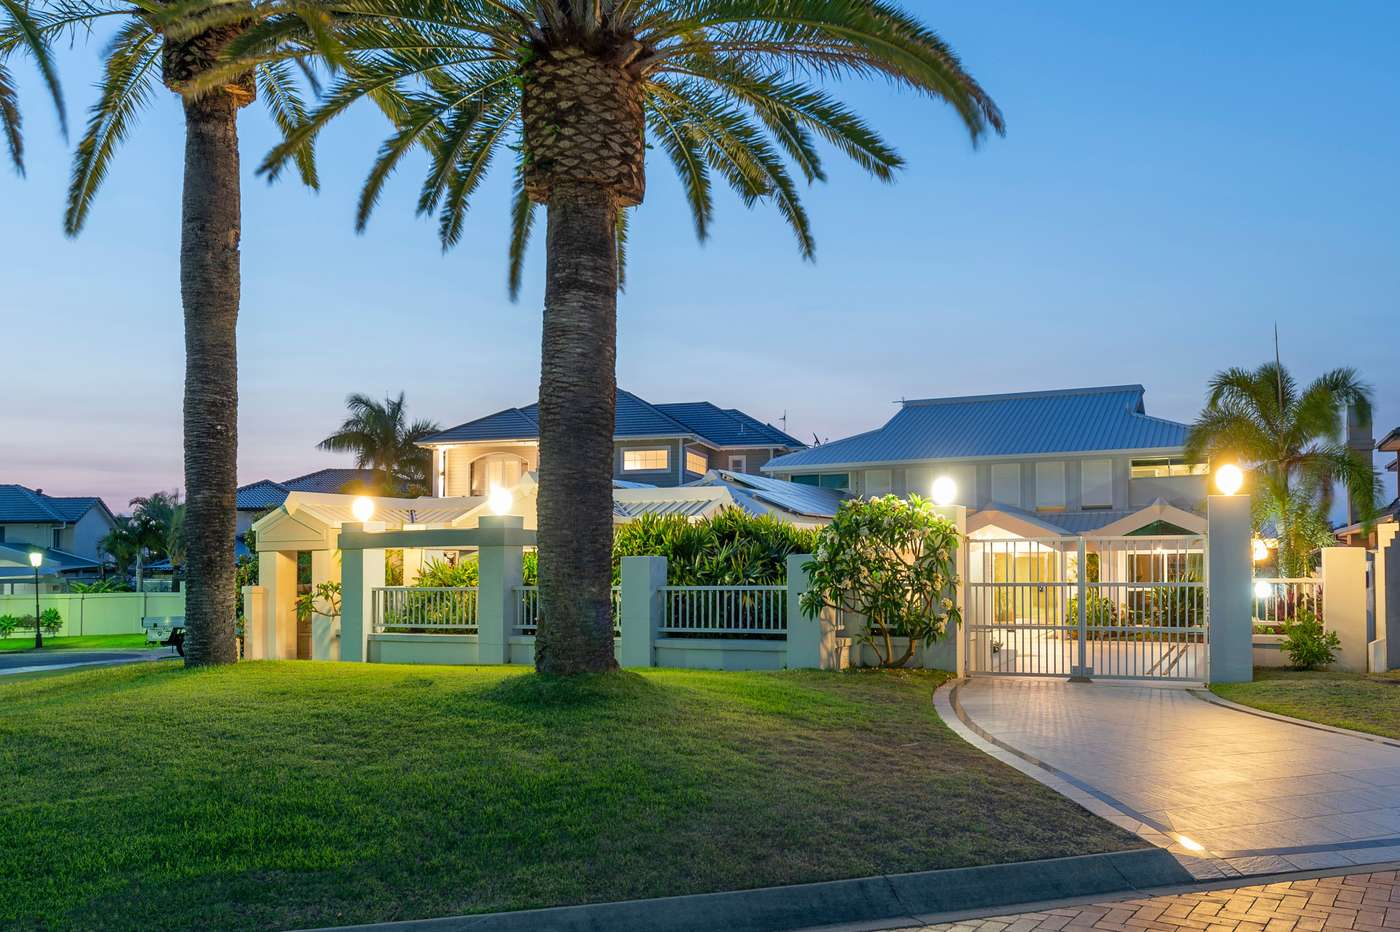 Main view of Homely house listing, 10 Excalibur Court, Sovereign Islands, QLD 4216